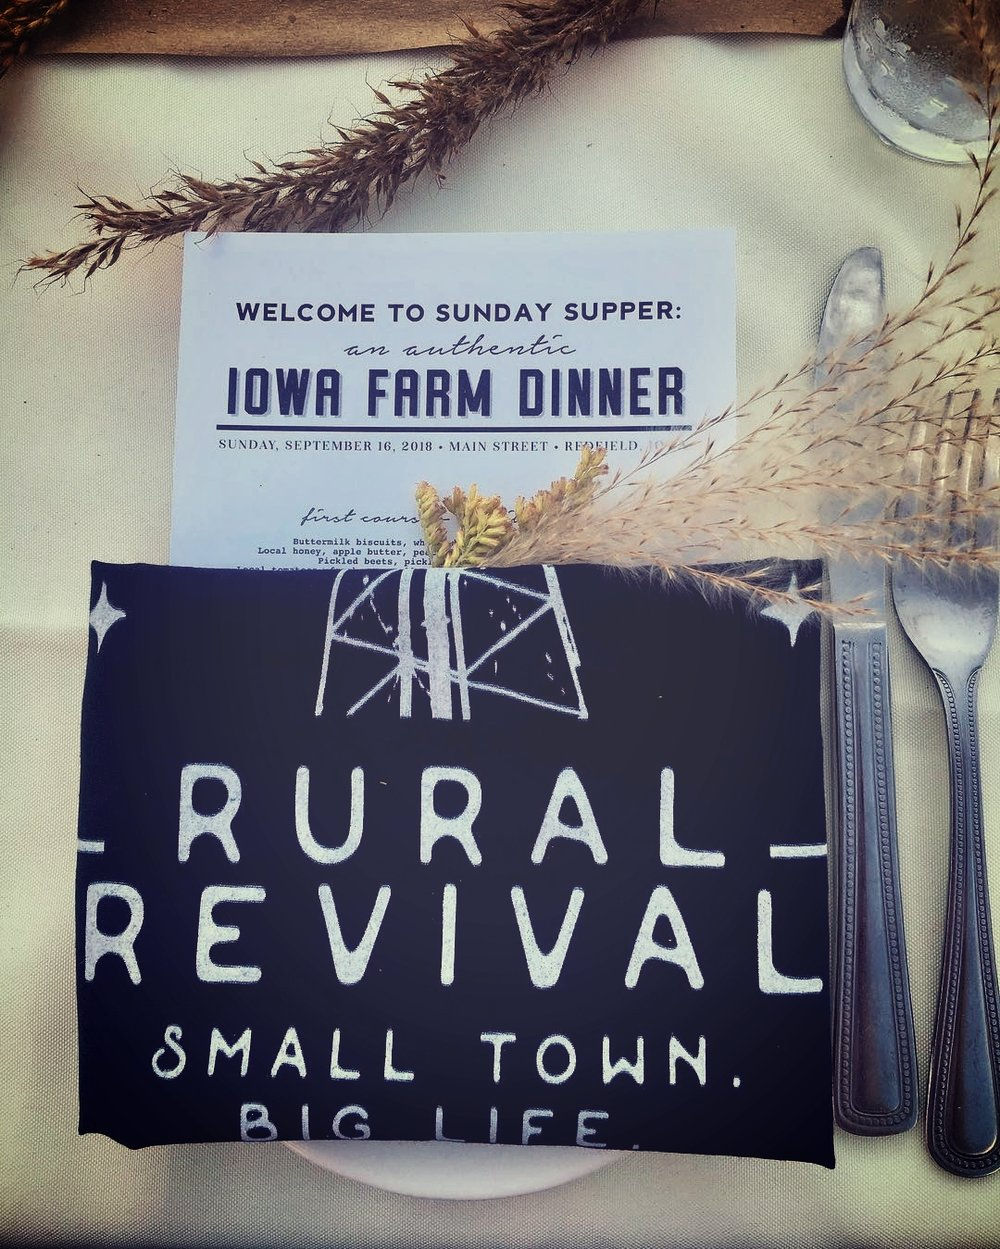 Rural Revival Iowa Farm Dinner.jpg